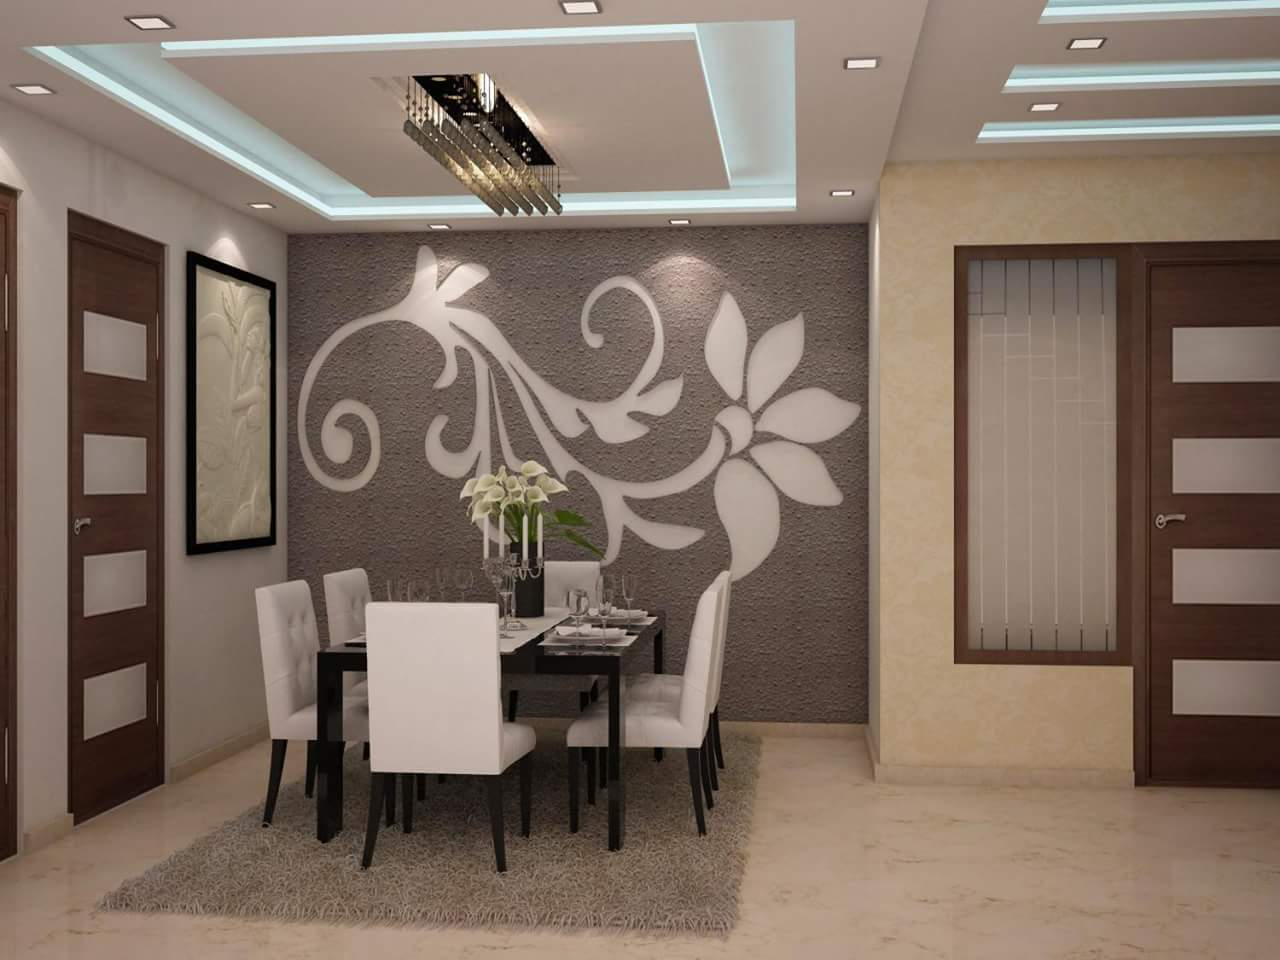 R7 INTERIORS, BEST INTERIOR DESIGNER IN HYDERABAD,BEST INTERIOR DESIGNER IN UPPAL, BEST INTERIOR DESIGNER IN TOLICHOWKI, BEST INTERIOR DESIGNER IN MANIKONDA, BEST INTERIOR DESIGNER IN L B NAGAR,